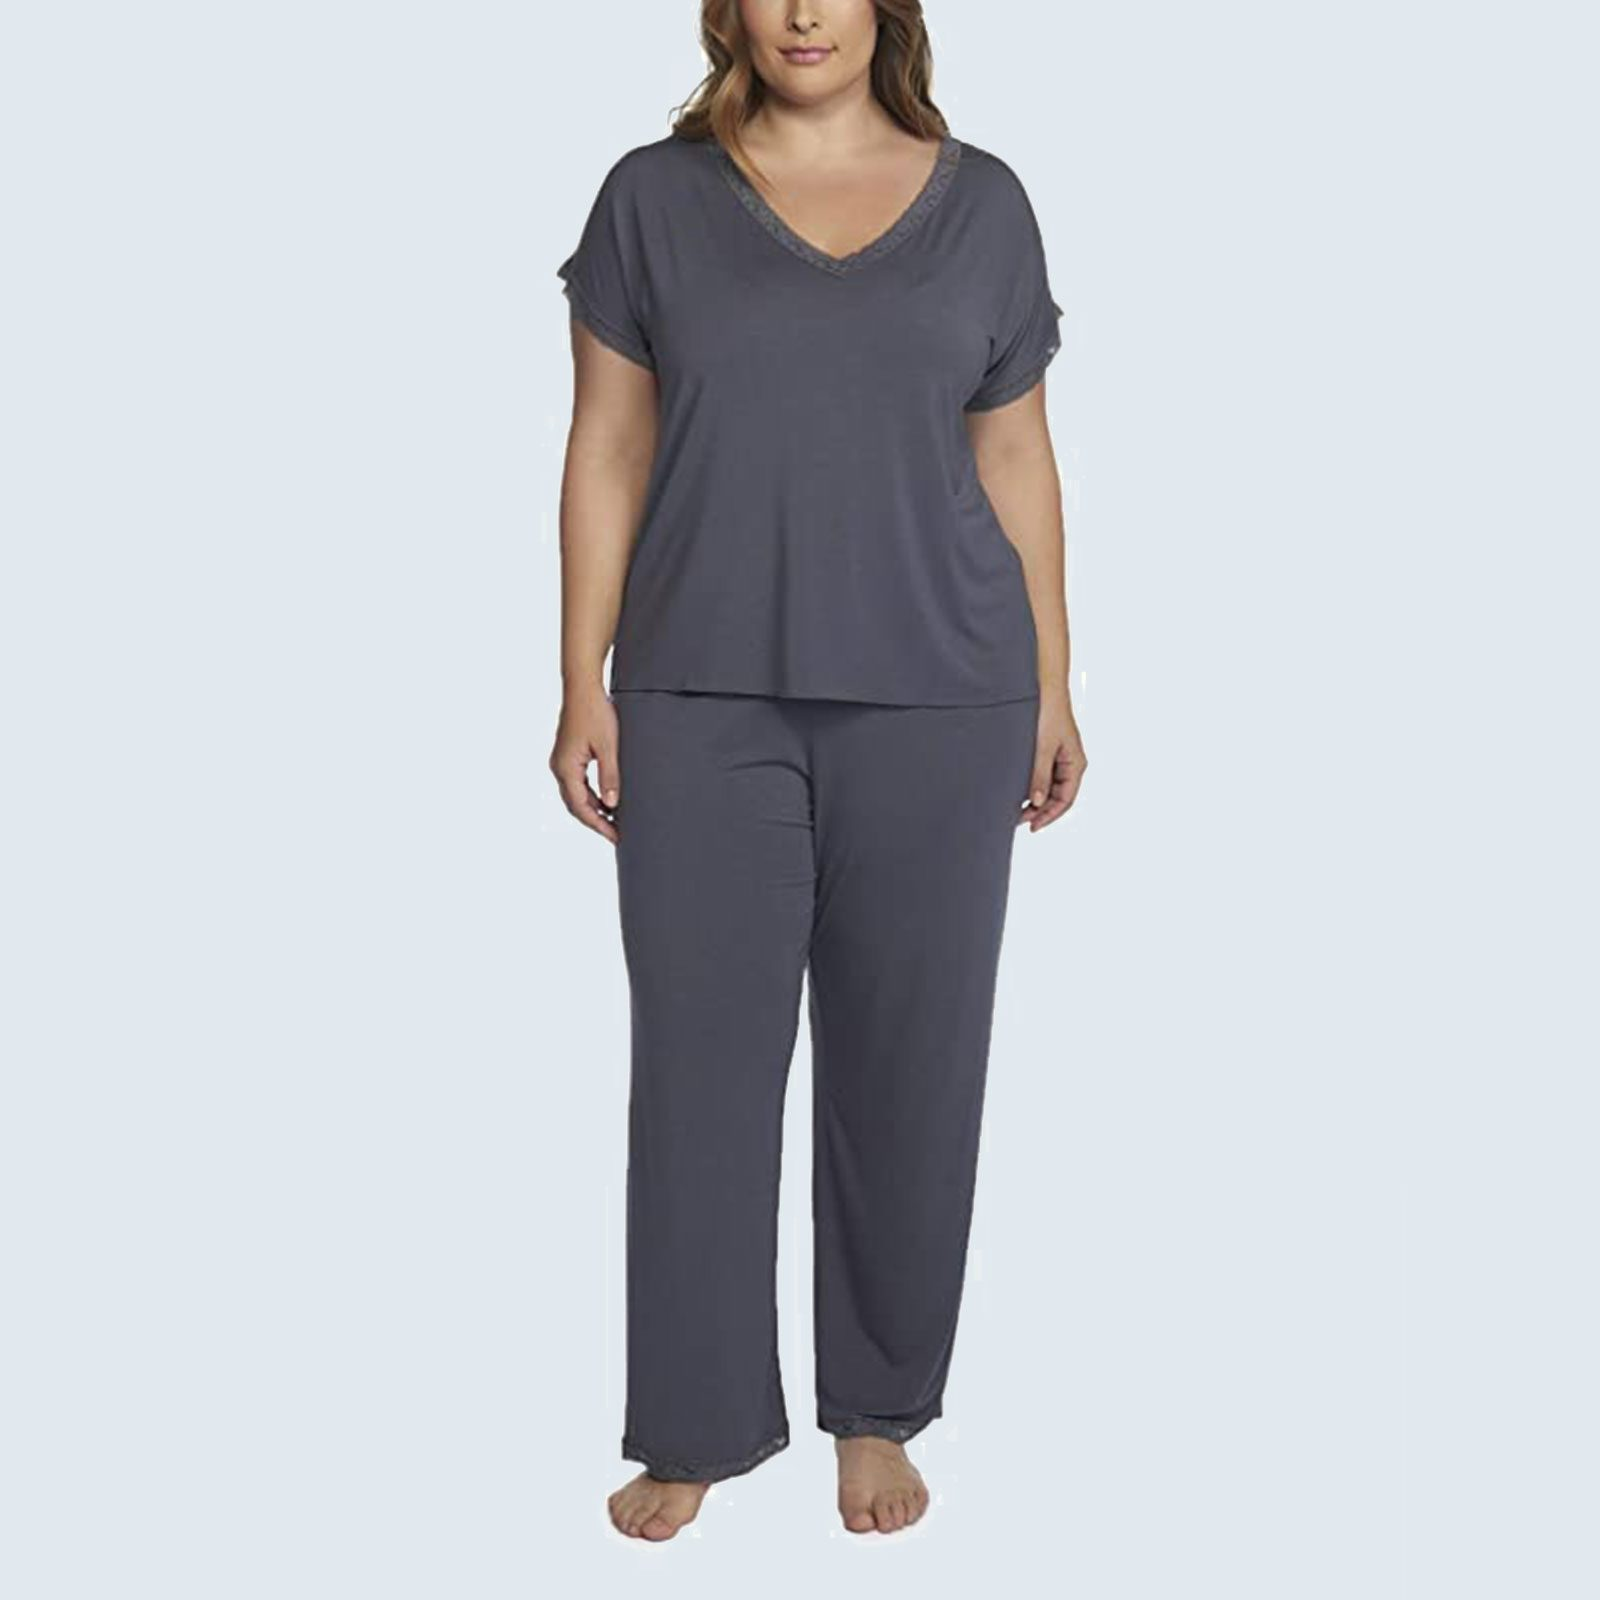 Luxe Milk Jersey V-Neck Tee and Classic Pant Set from Barefoot Dreams